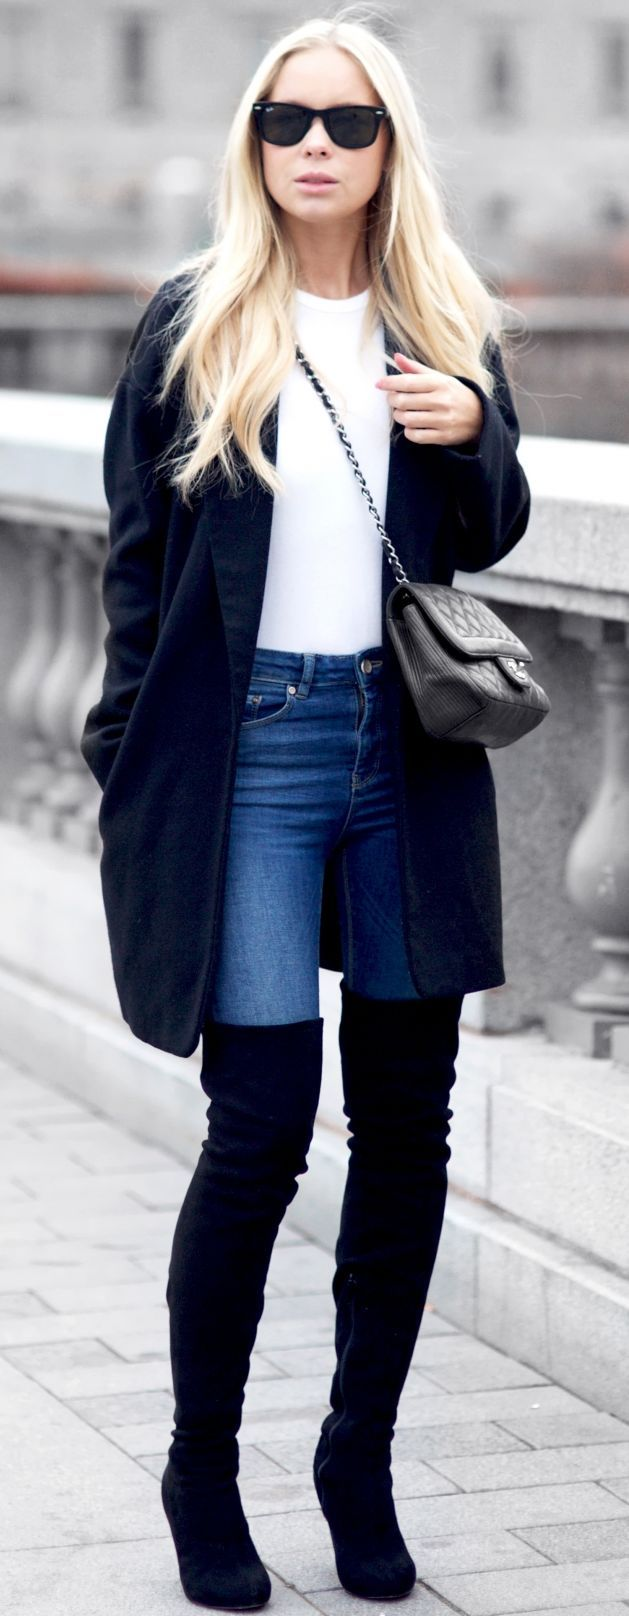 Black Oversize Coat And Overknees Hall Street Style Inspo by Victoria Tornegren